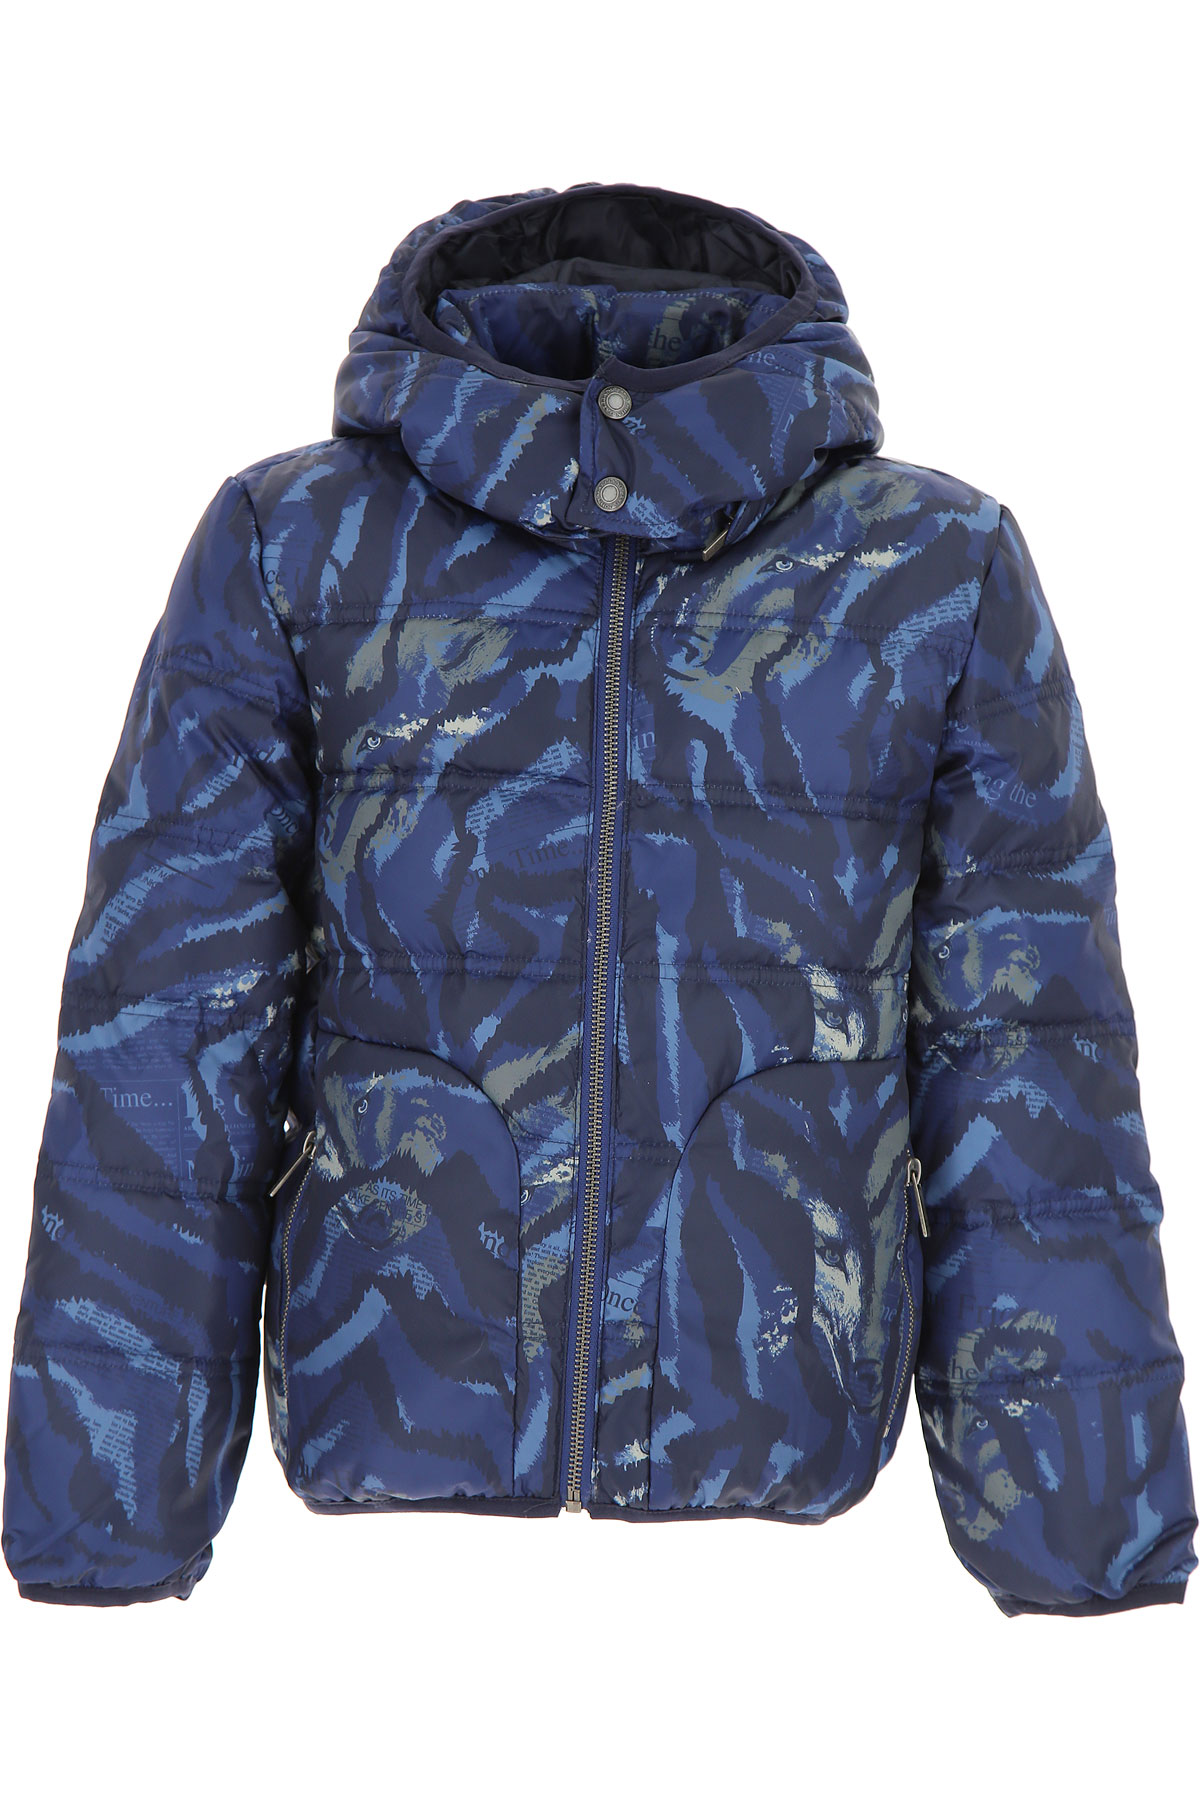 Image of Galliano Boys Down Jacket for Kids, Puffer Ski Jacket, Blue, polyester, 2017, 10Y 14Y 16Y 4Y 6Y 8Y